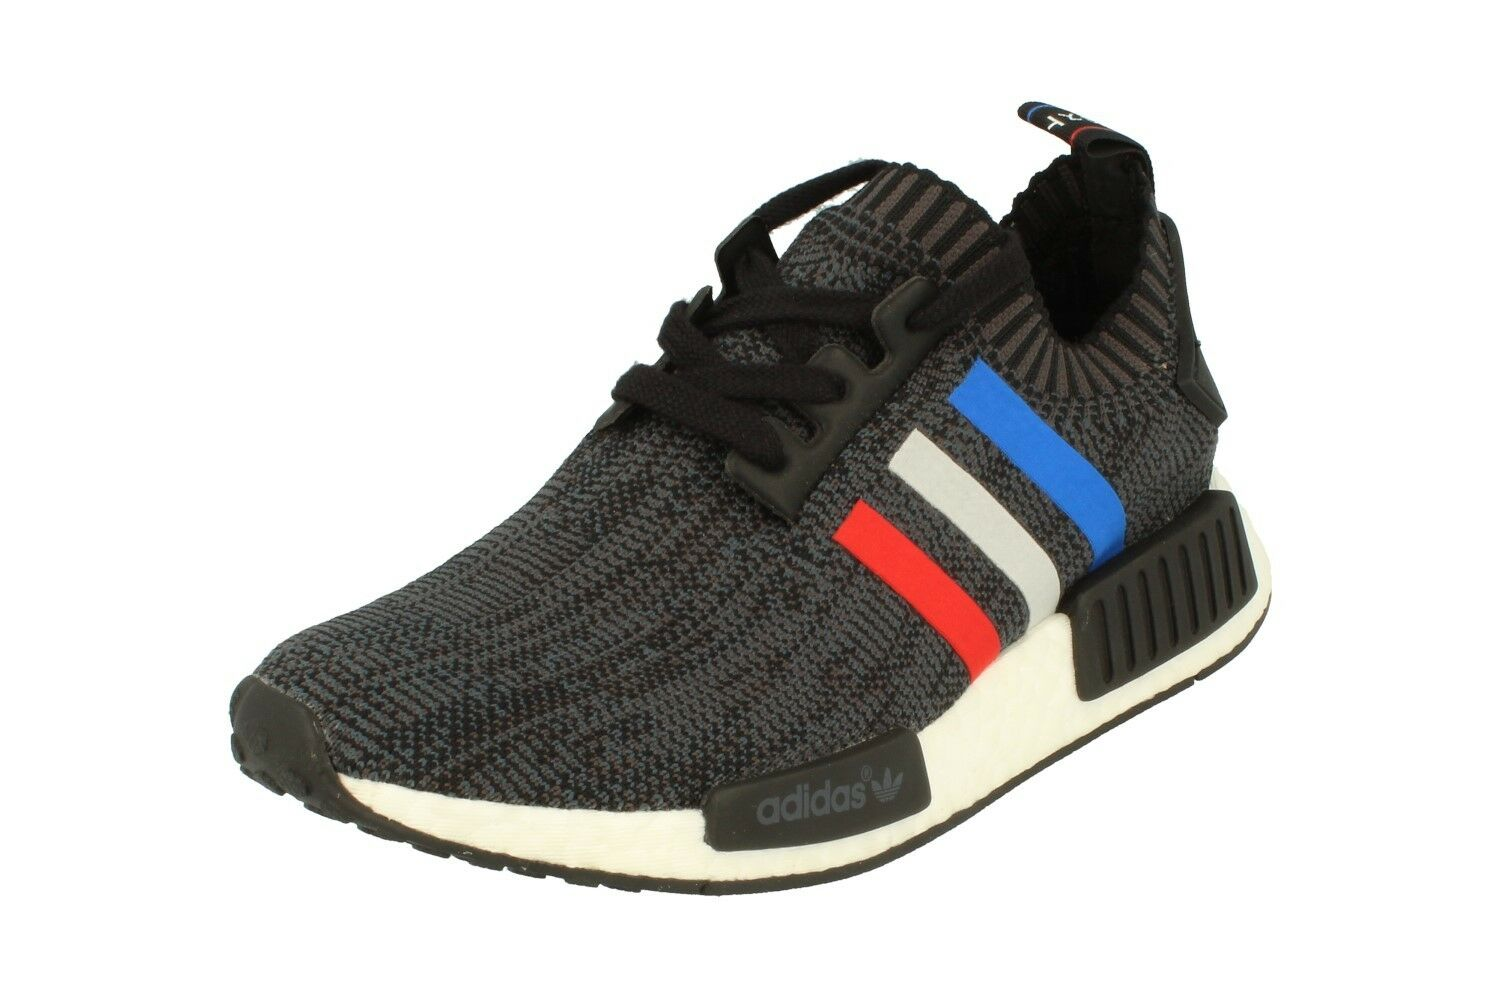 Adidas Originals Nmd_R1 Pk Mens Sneakers shoes Prime Knit BB2887